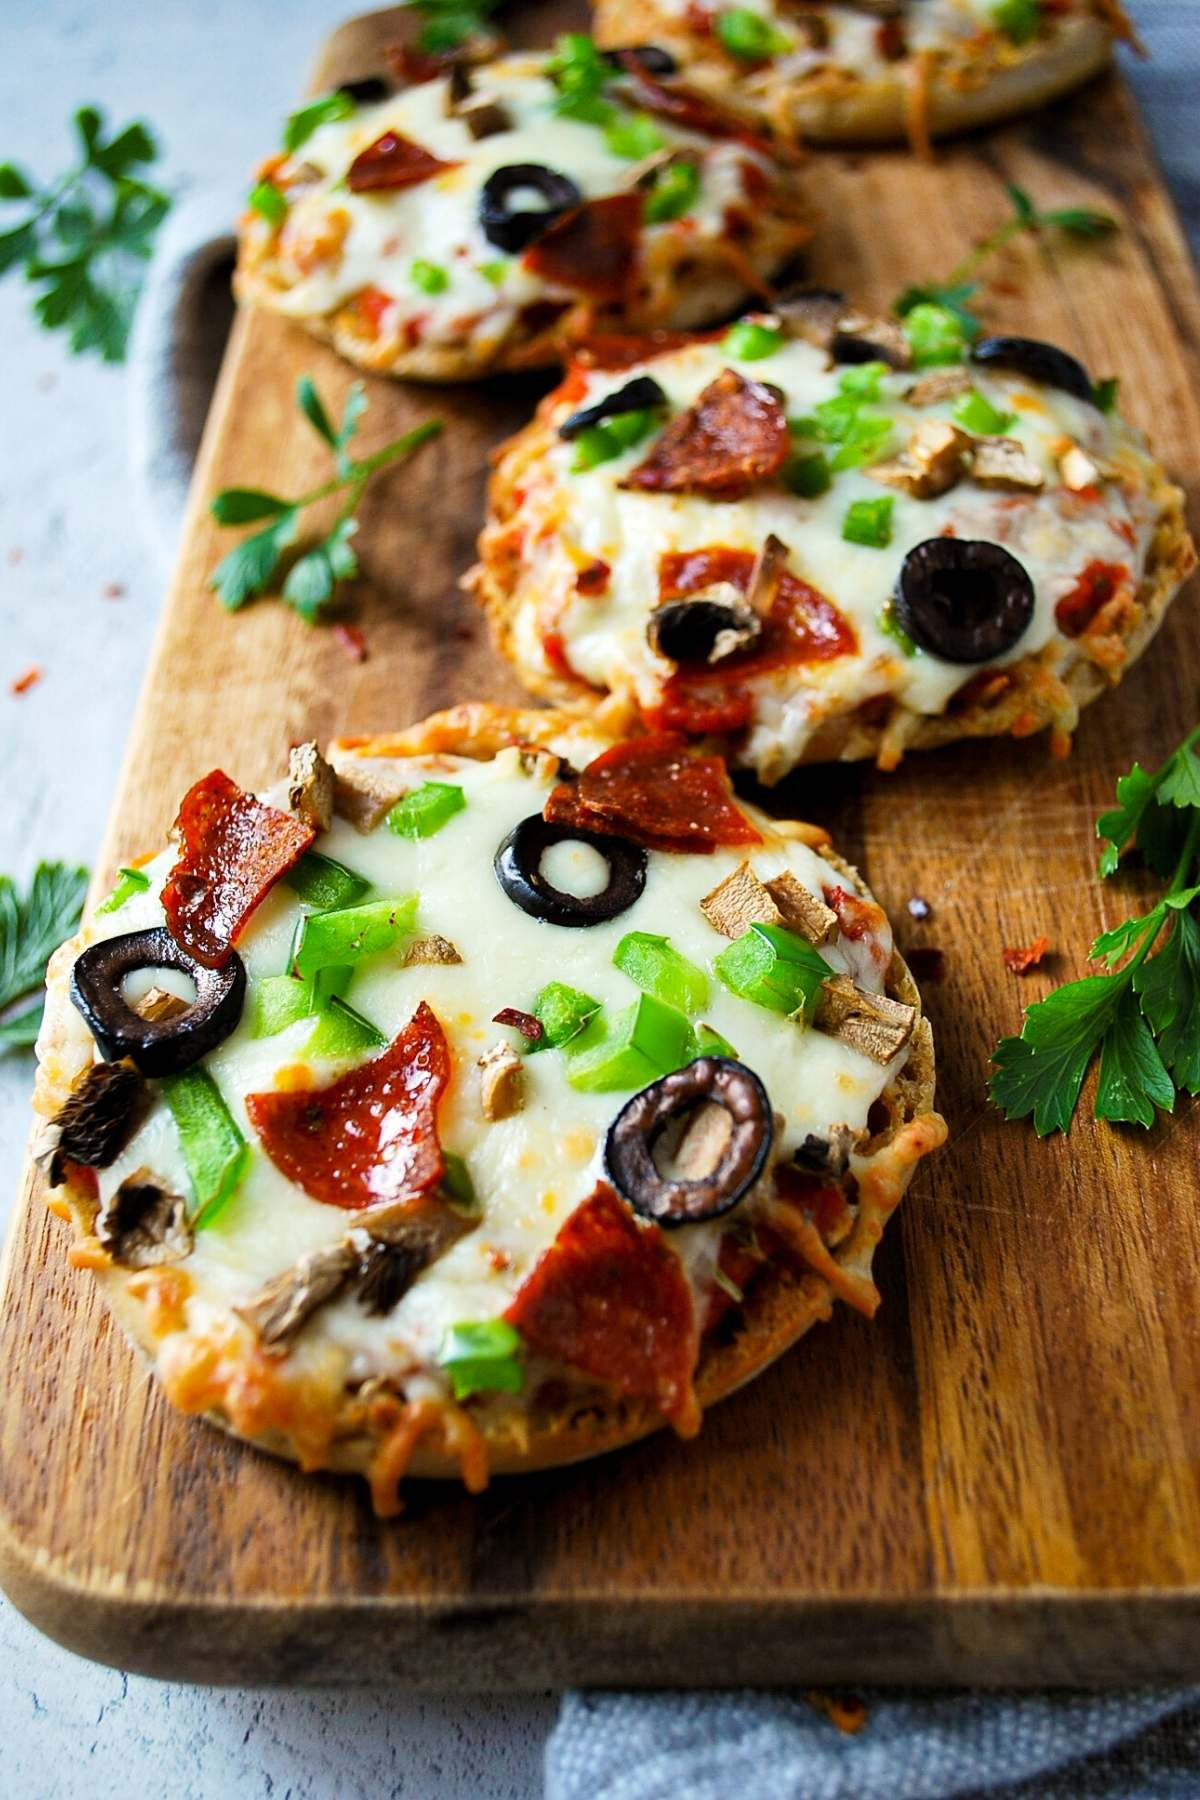 Supreme air fryer english muffin pizzas on a cutting board with fresh herbs